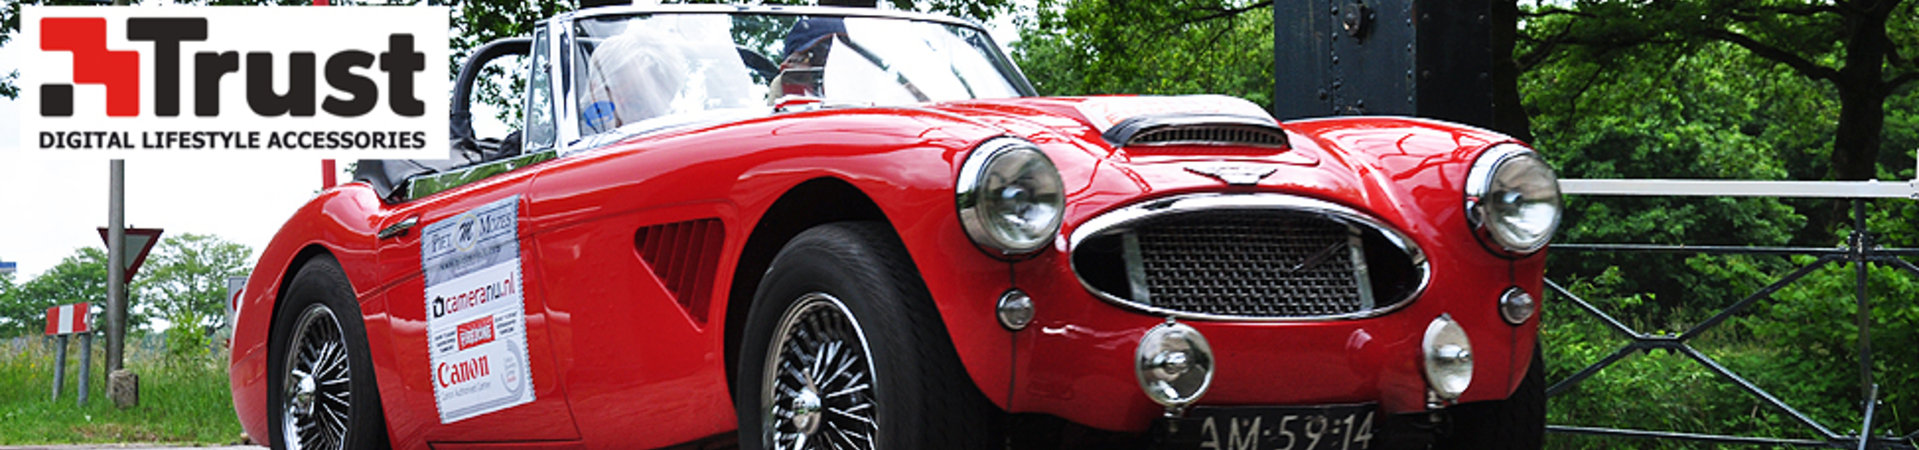 website austin healey - trustk